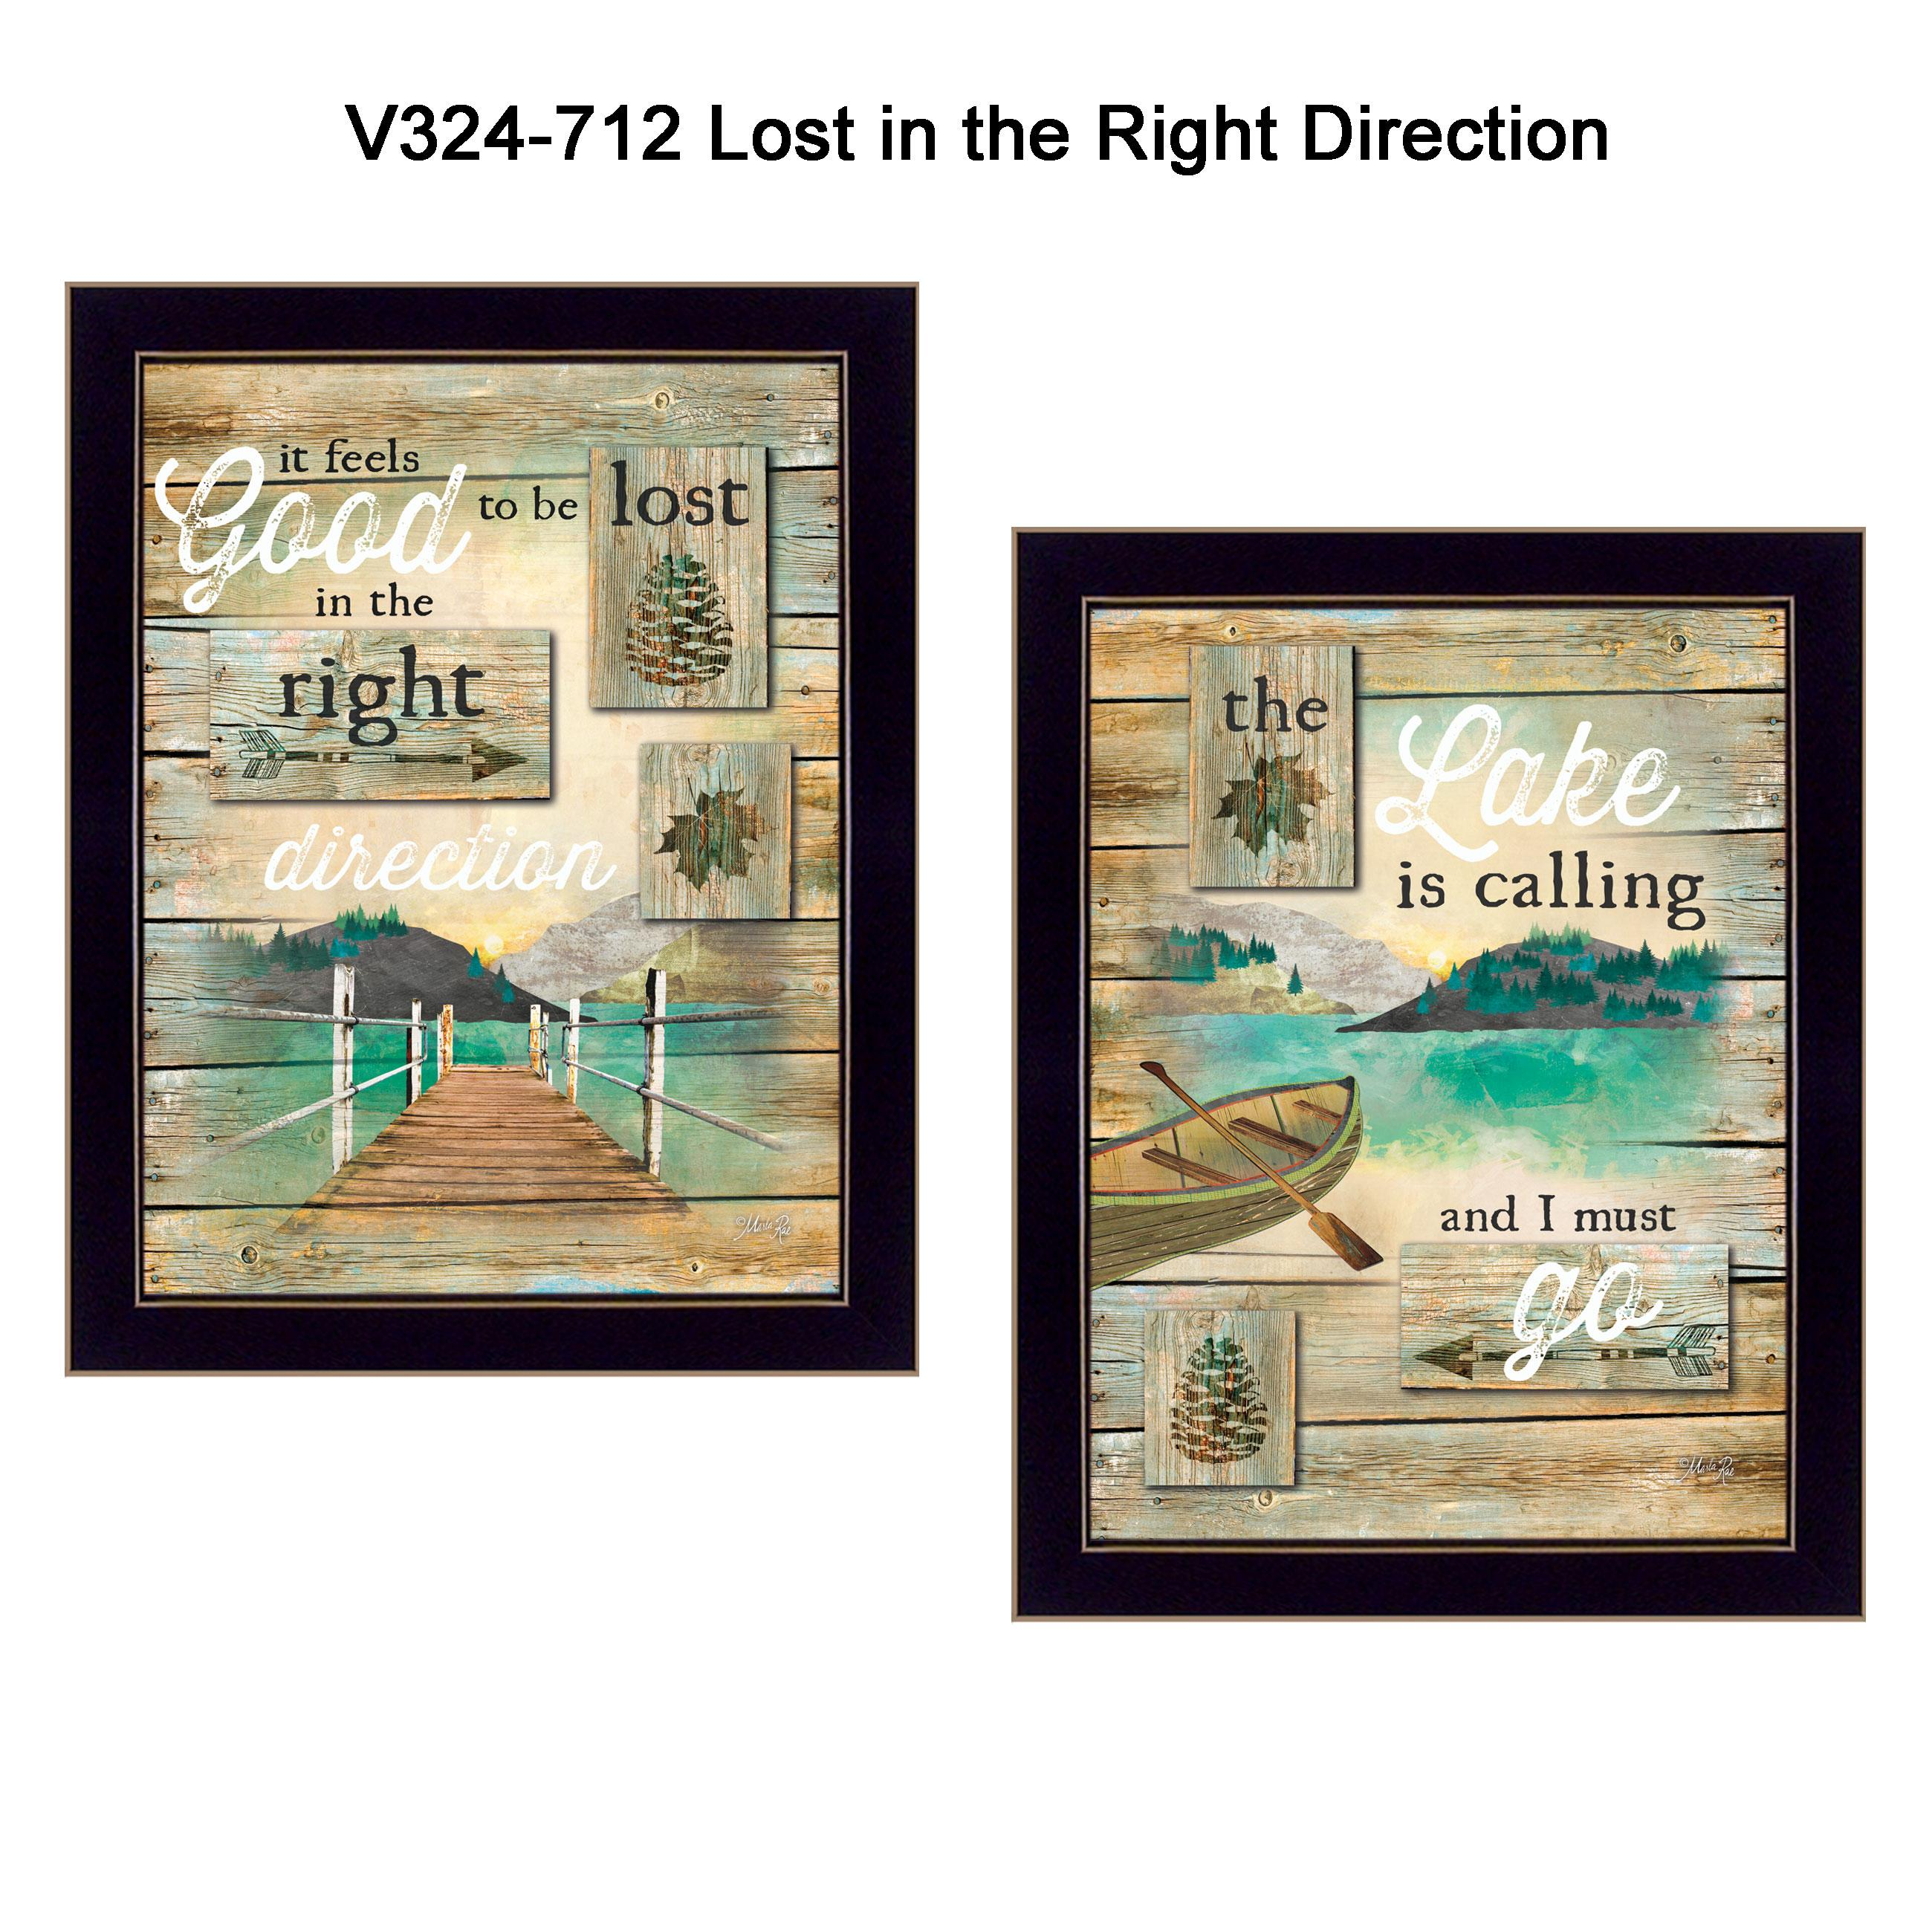 """Lost in the Right Direction"" by Marla Rae Printed Framed Wall Art - image 2 of 2"